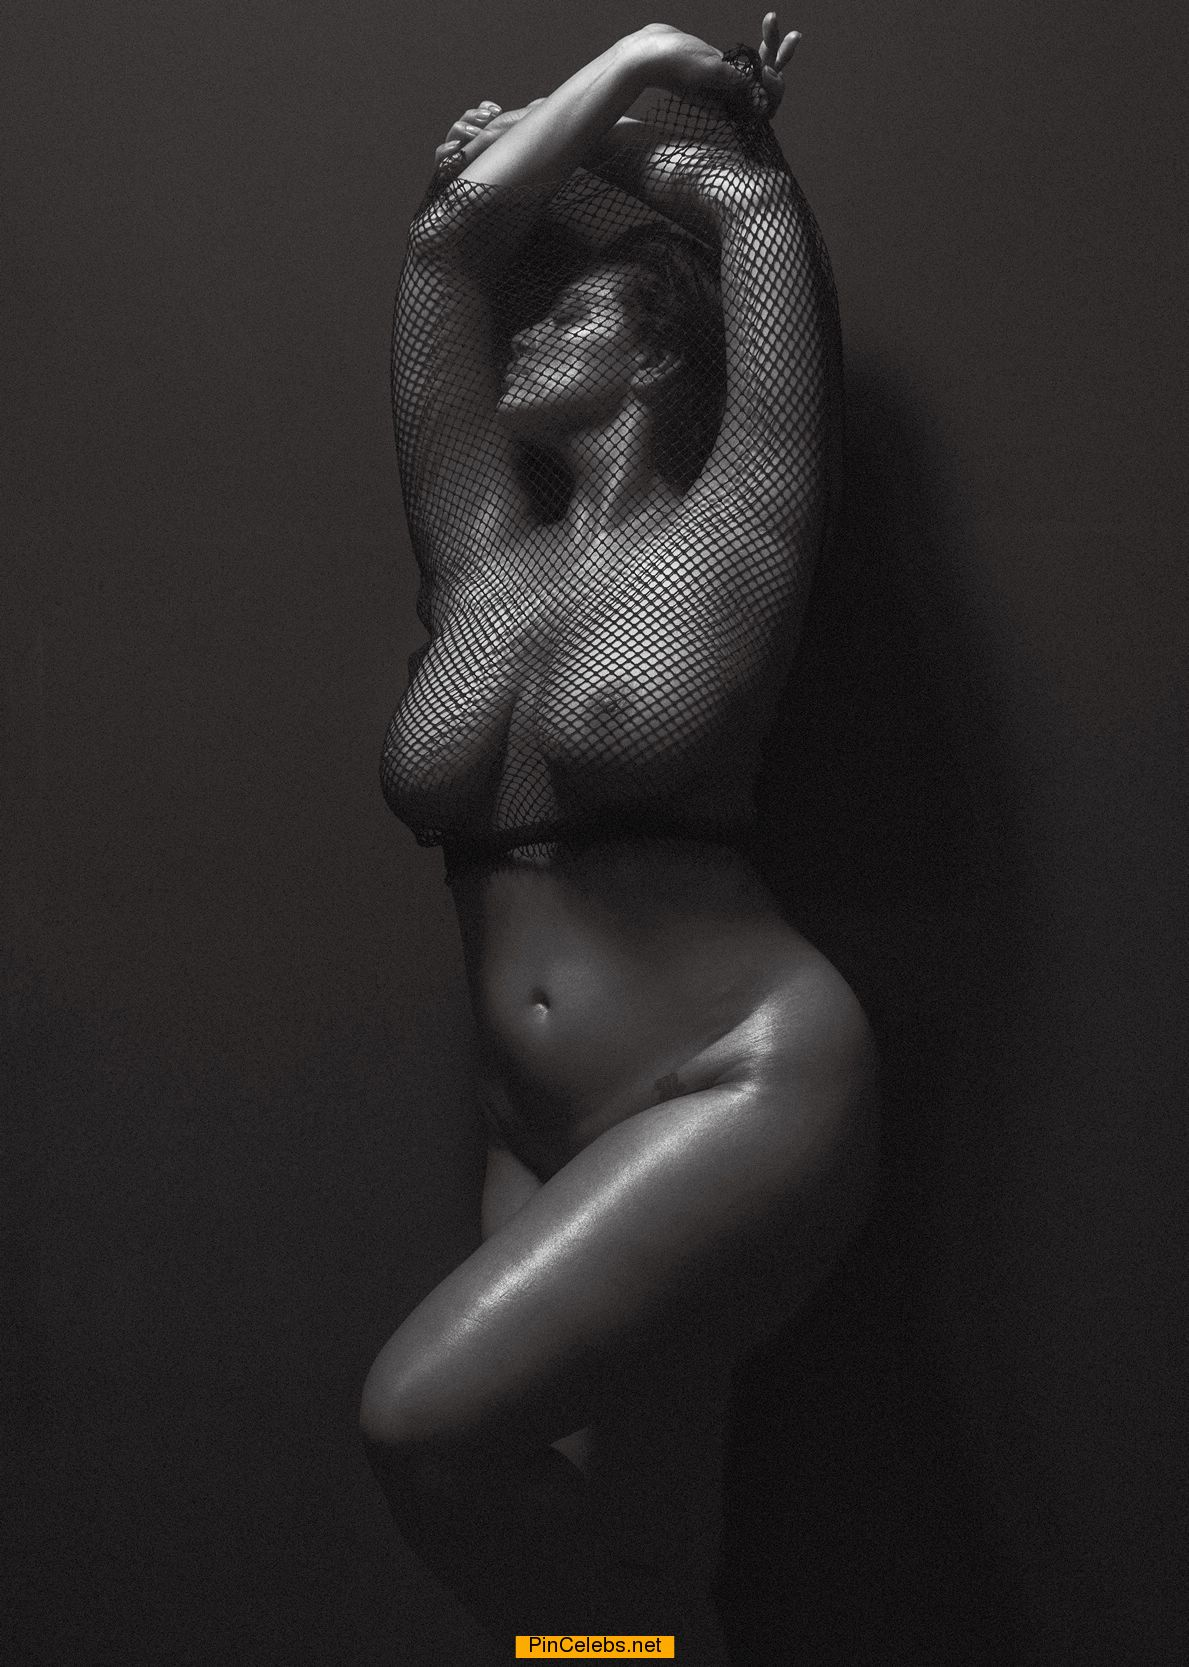 Ashley Graham posing nude